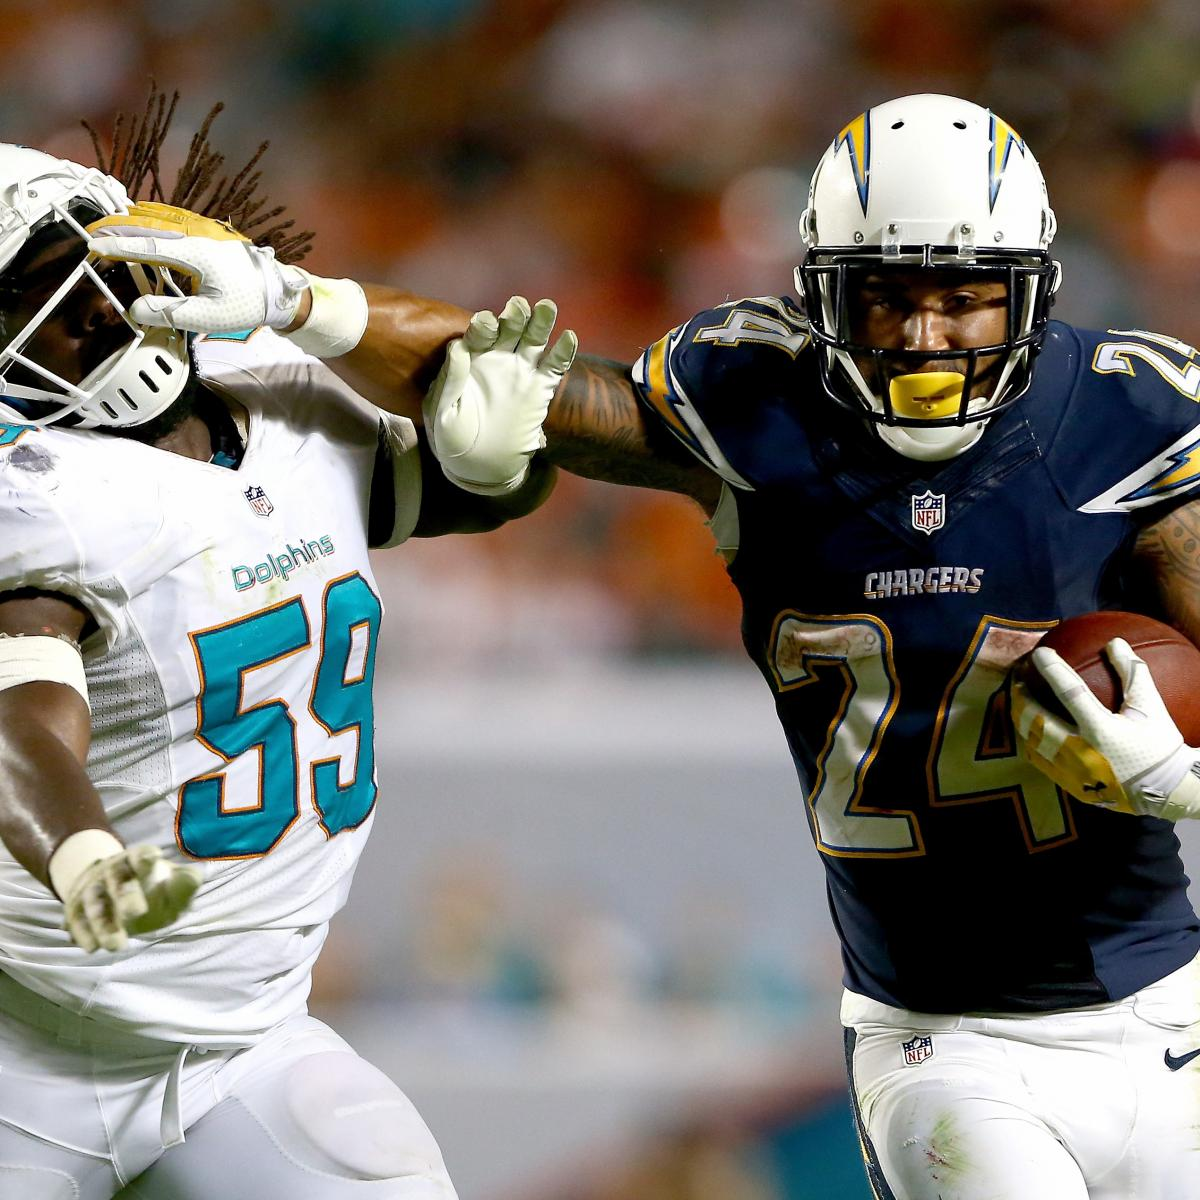 San Diego Chargers Fantasy: Ryan Mathews' Updated 2013 Fantasy Outlook After Week 11